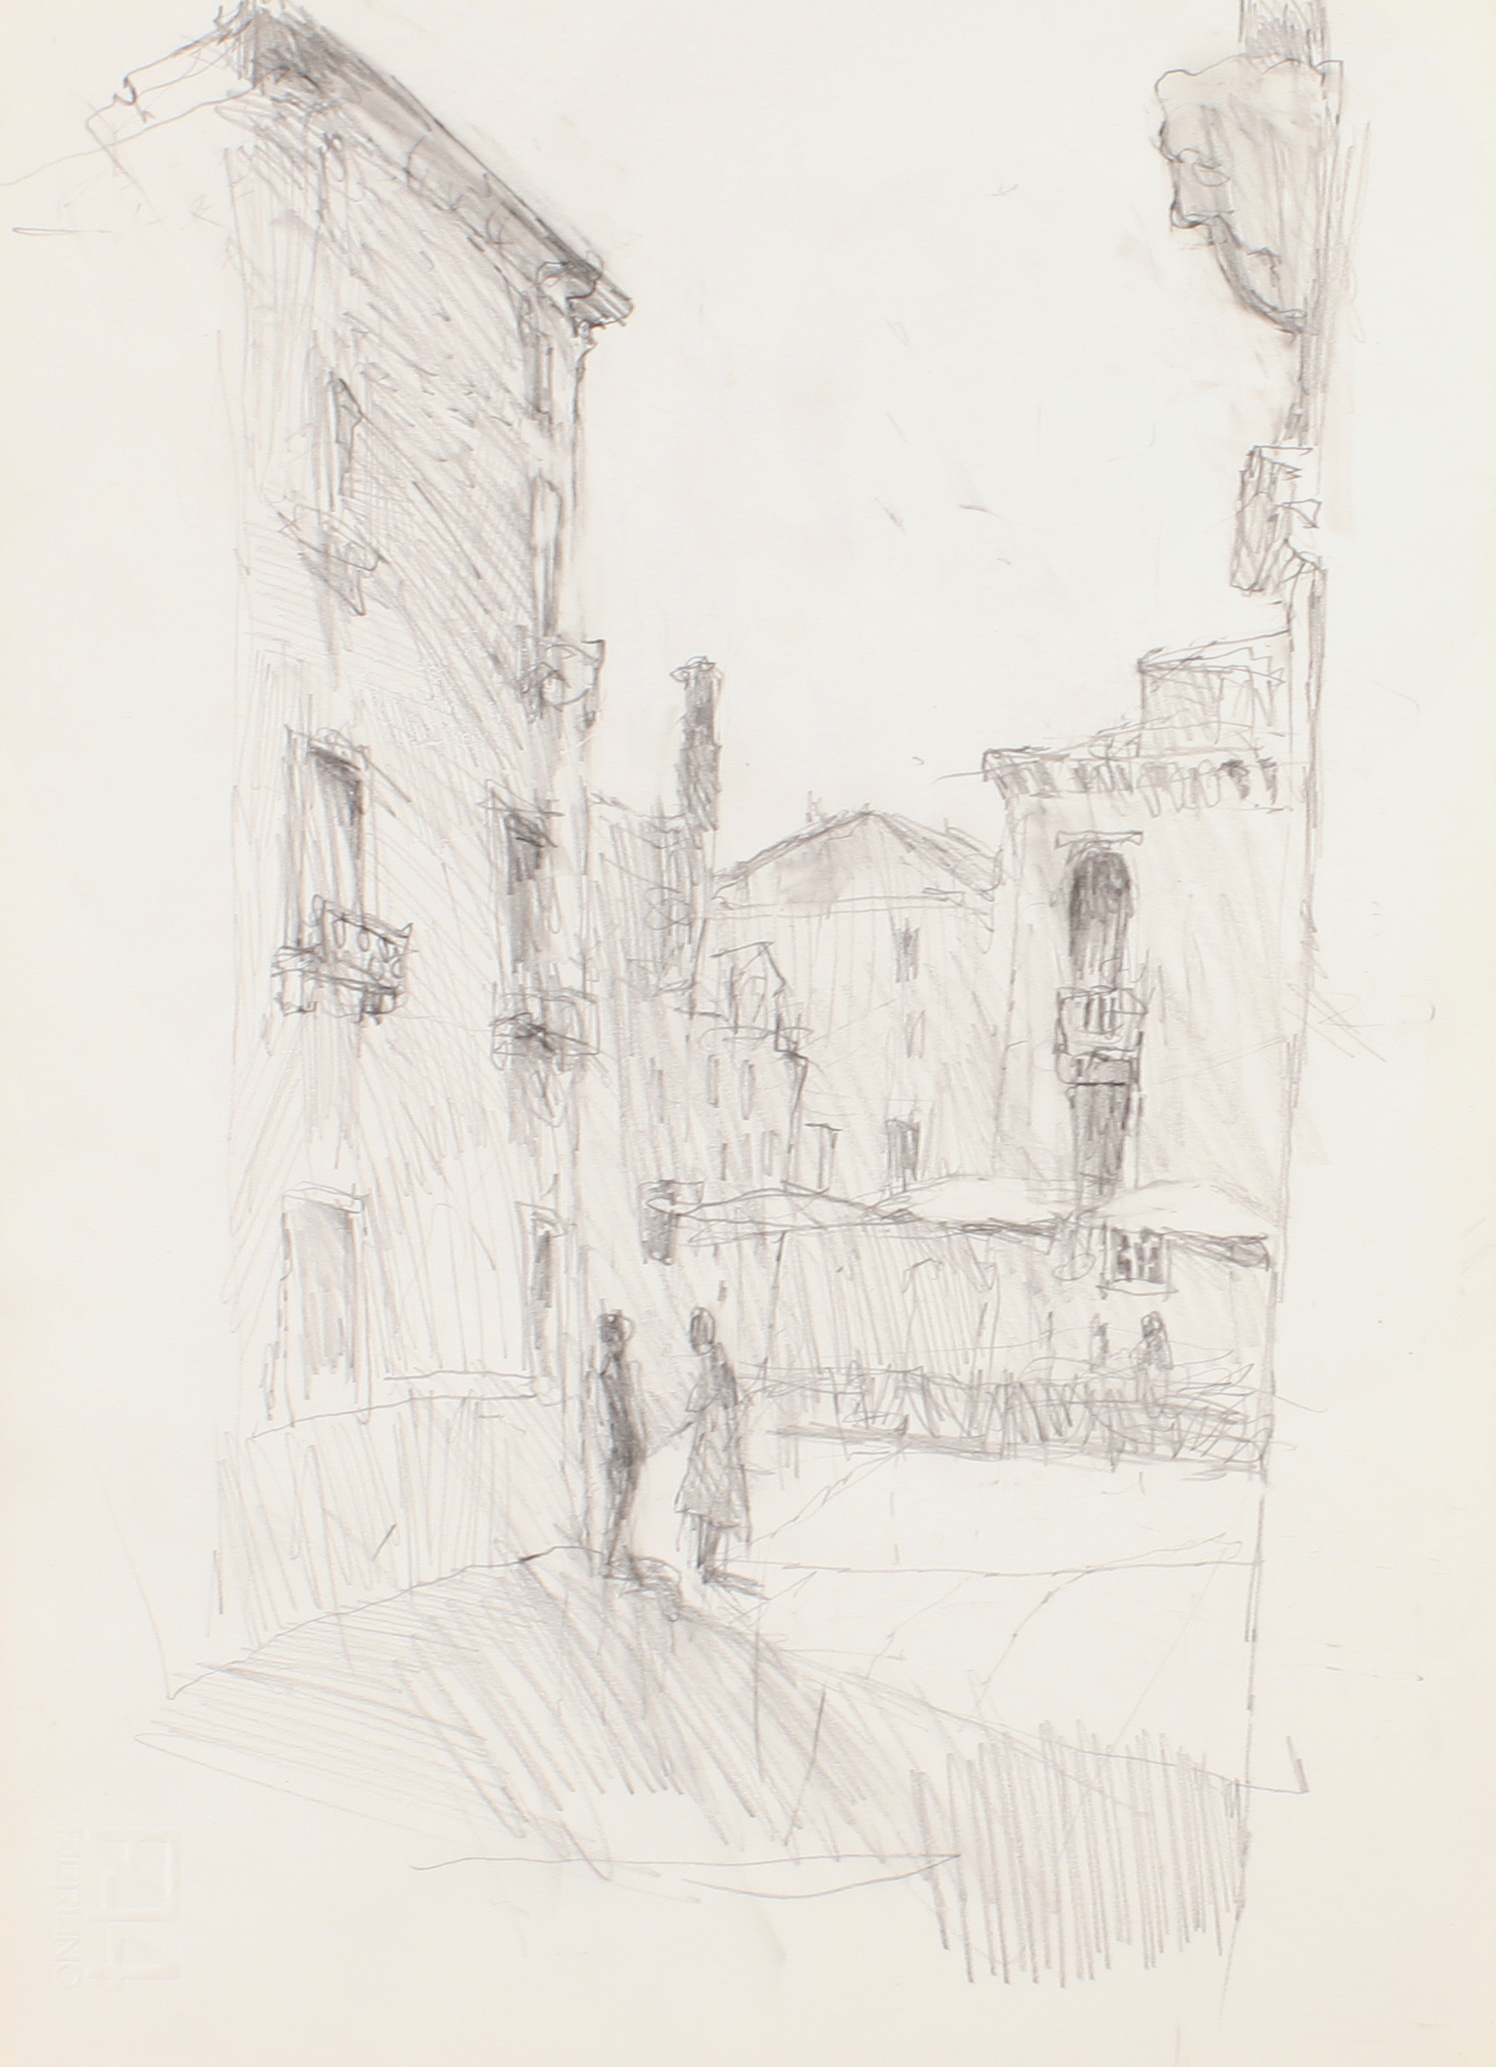 1980s_Venice_Square_with_Palazzo_and_Church_pencil_on_paper_13x9in_WPF070.jpg